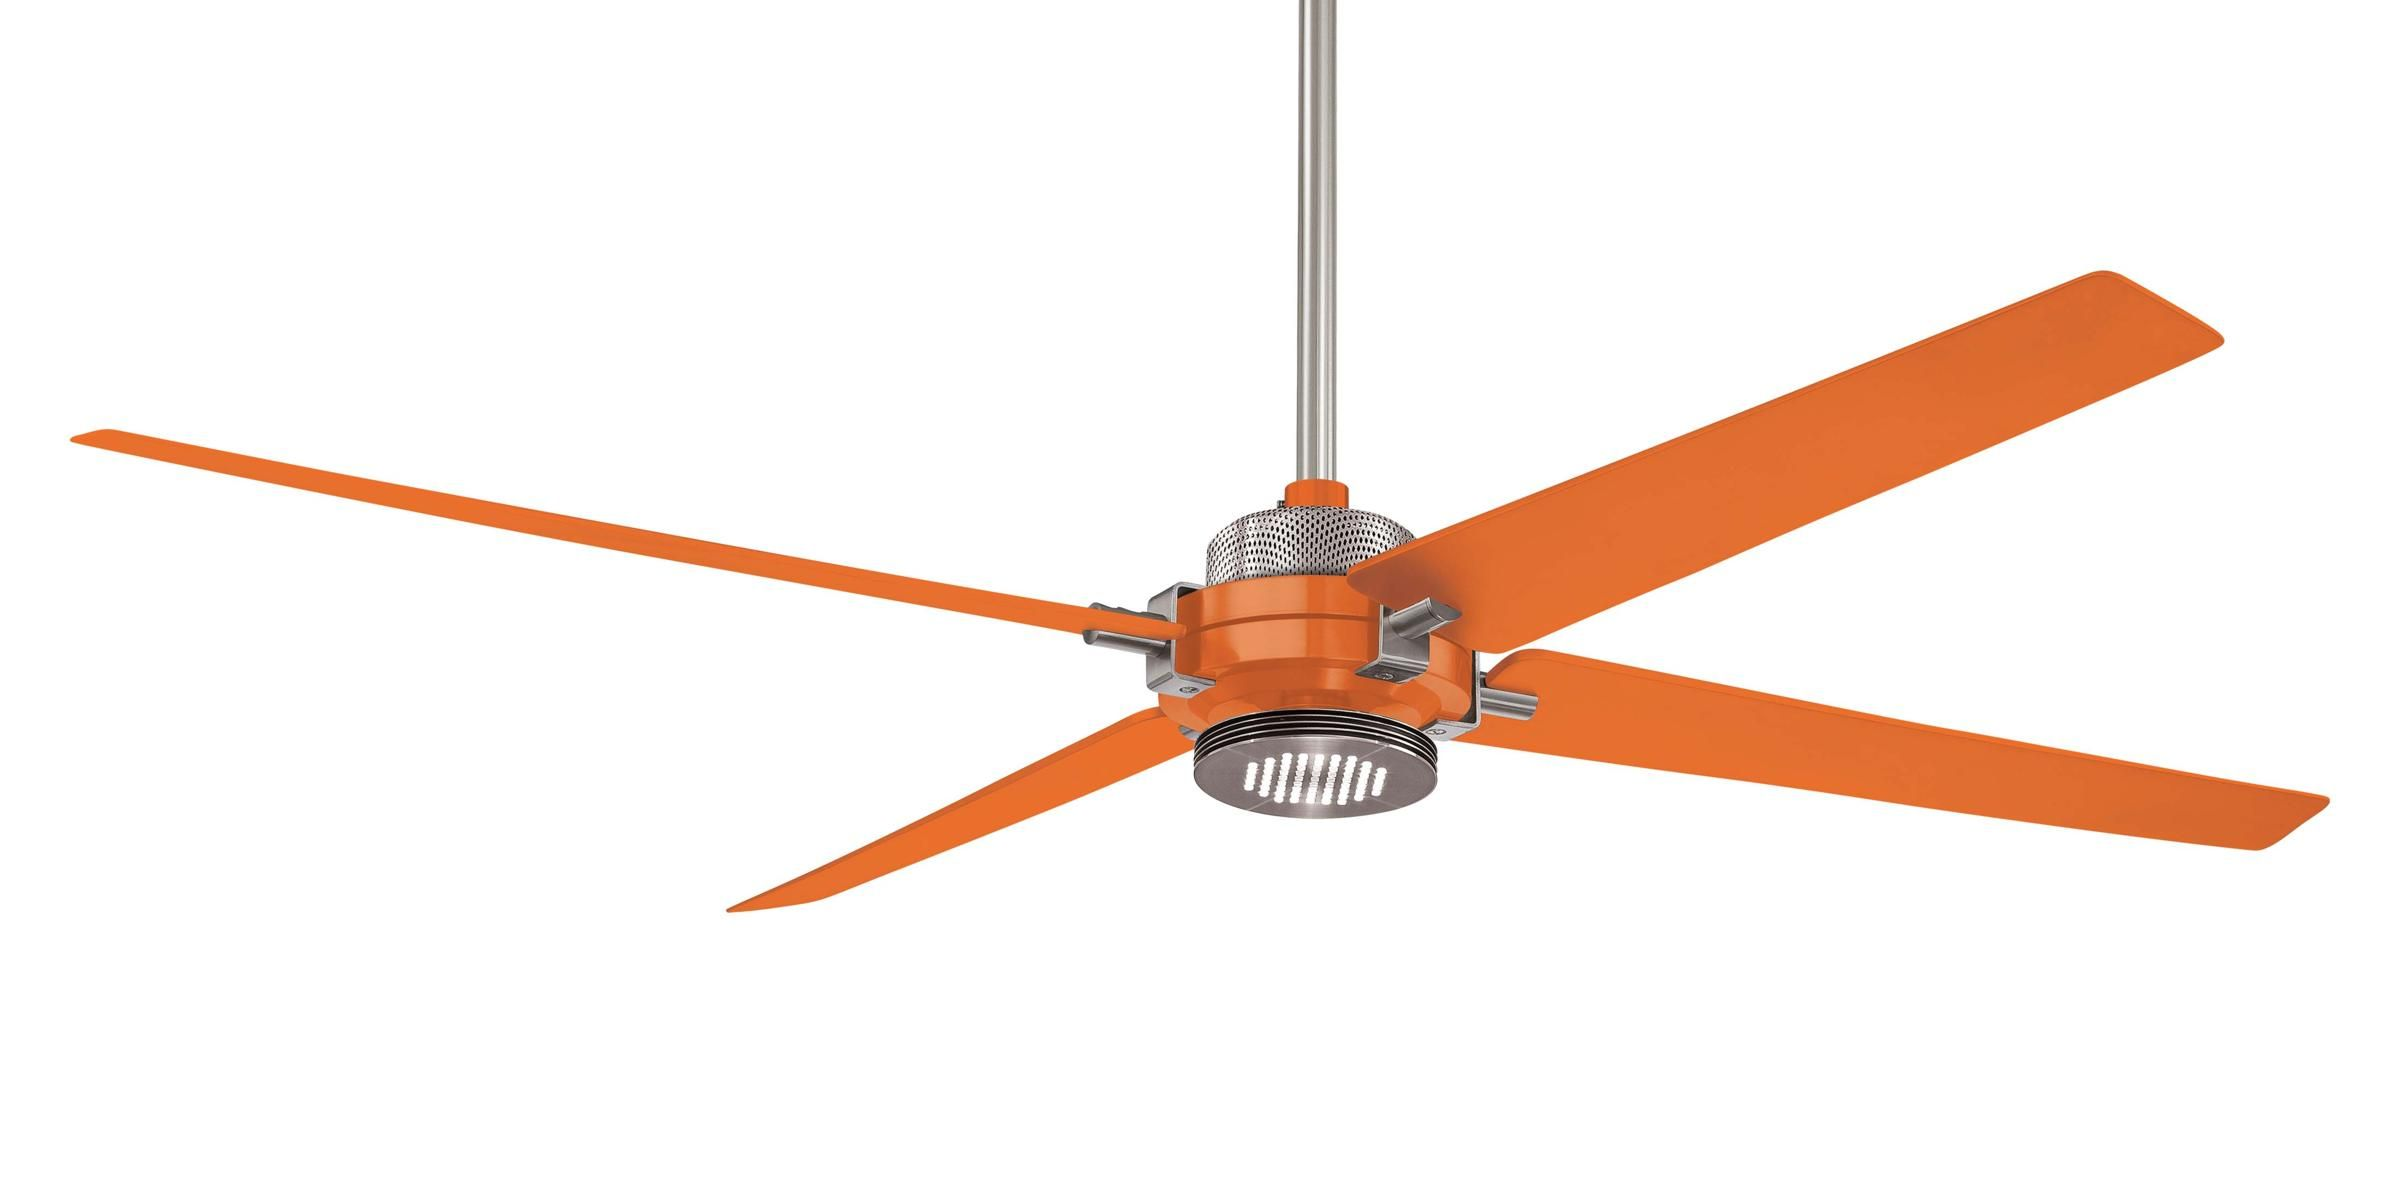 Minka Aire Spectre Ceiling Fan F726 Bn Org In Orange With Brushed Nickel Guaranteed Lowest Price Minka Aire Ceiling Fan Minka